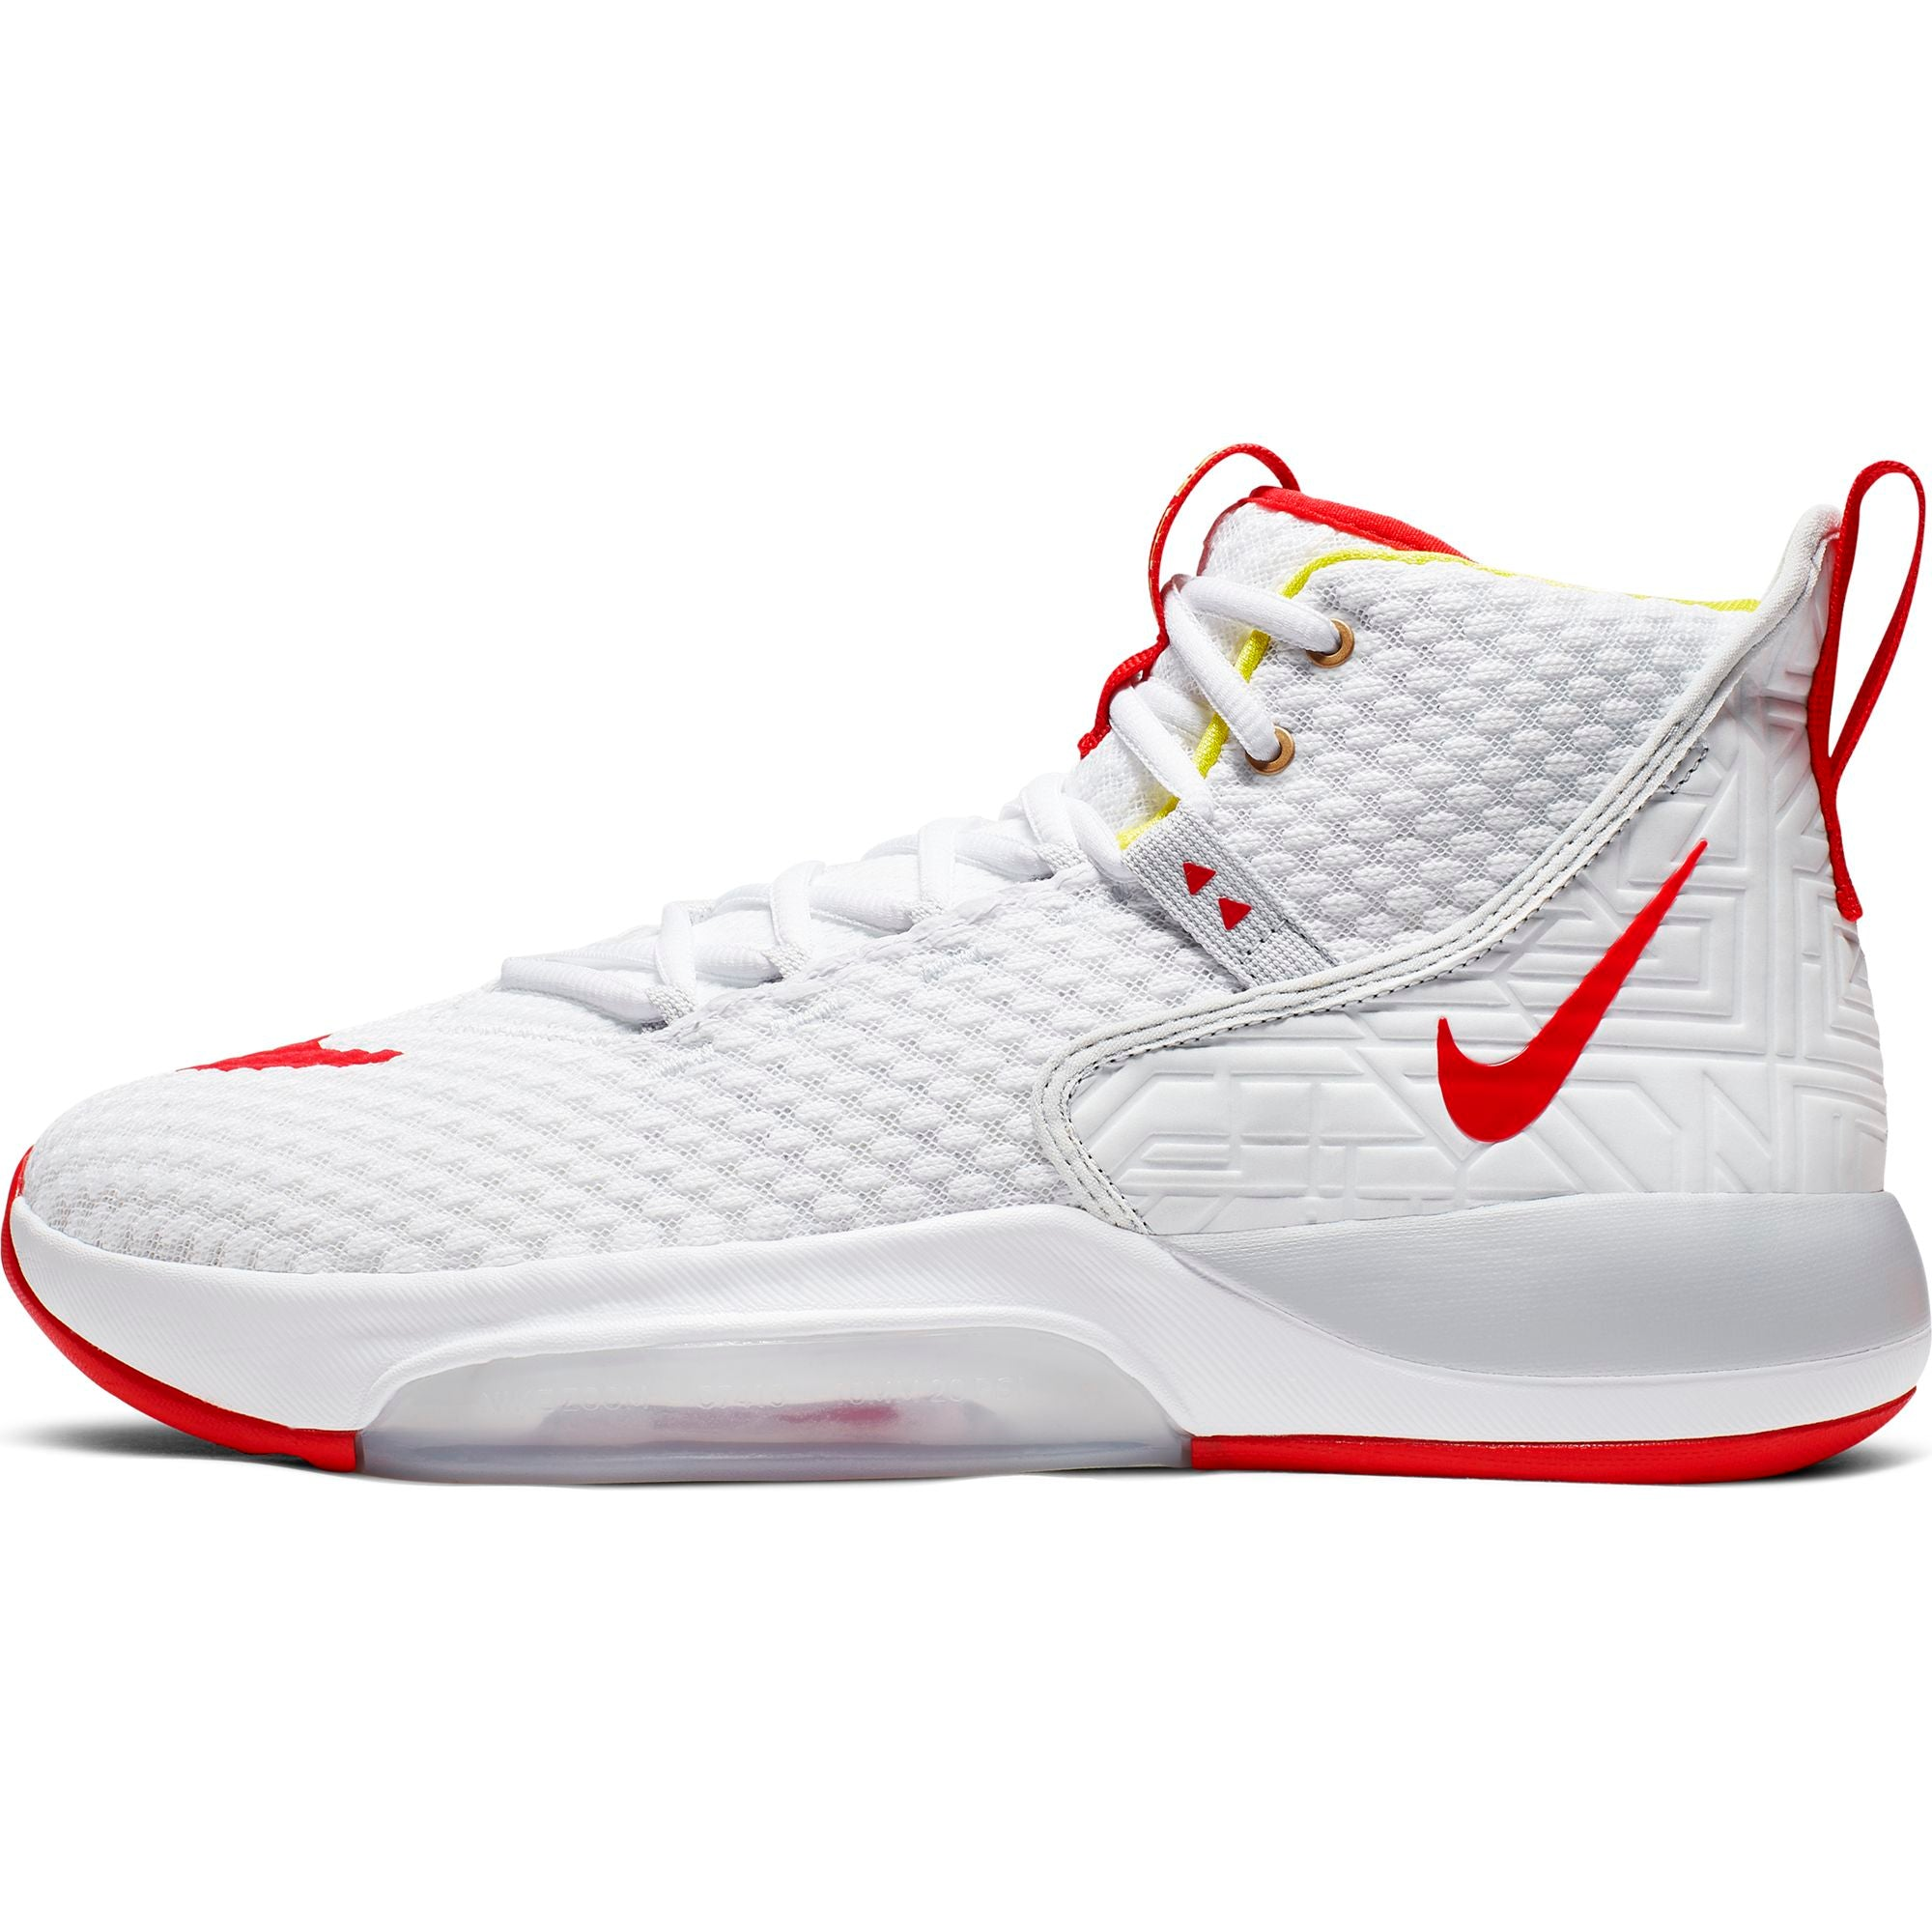 Nike Basketball Zoom Rize Boot/Shoe - NK-BQ5467-100